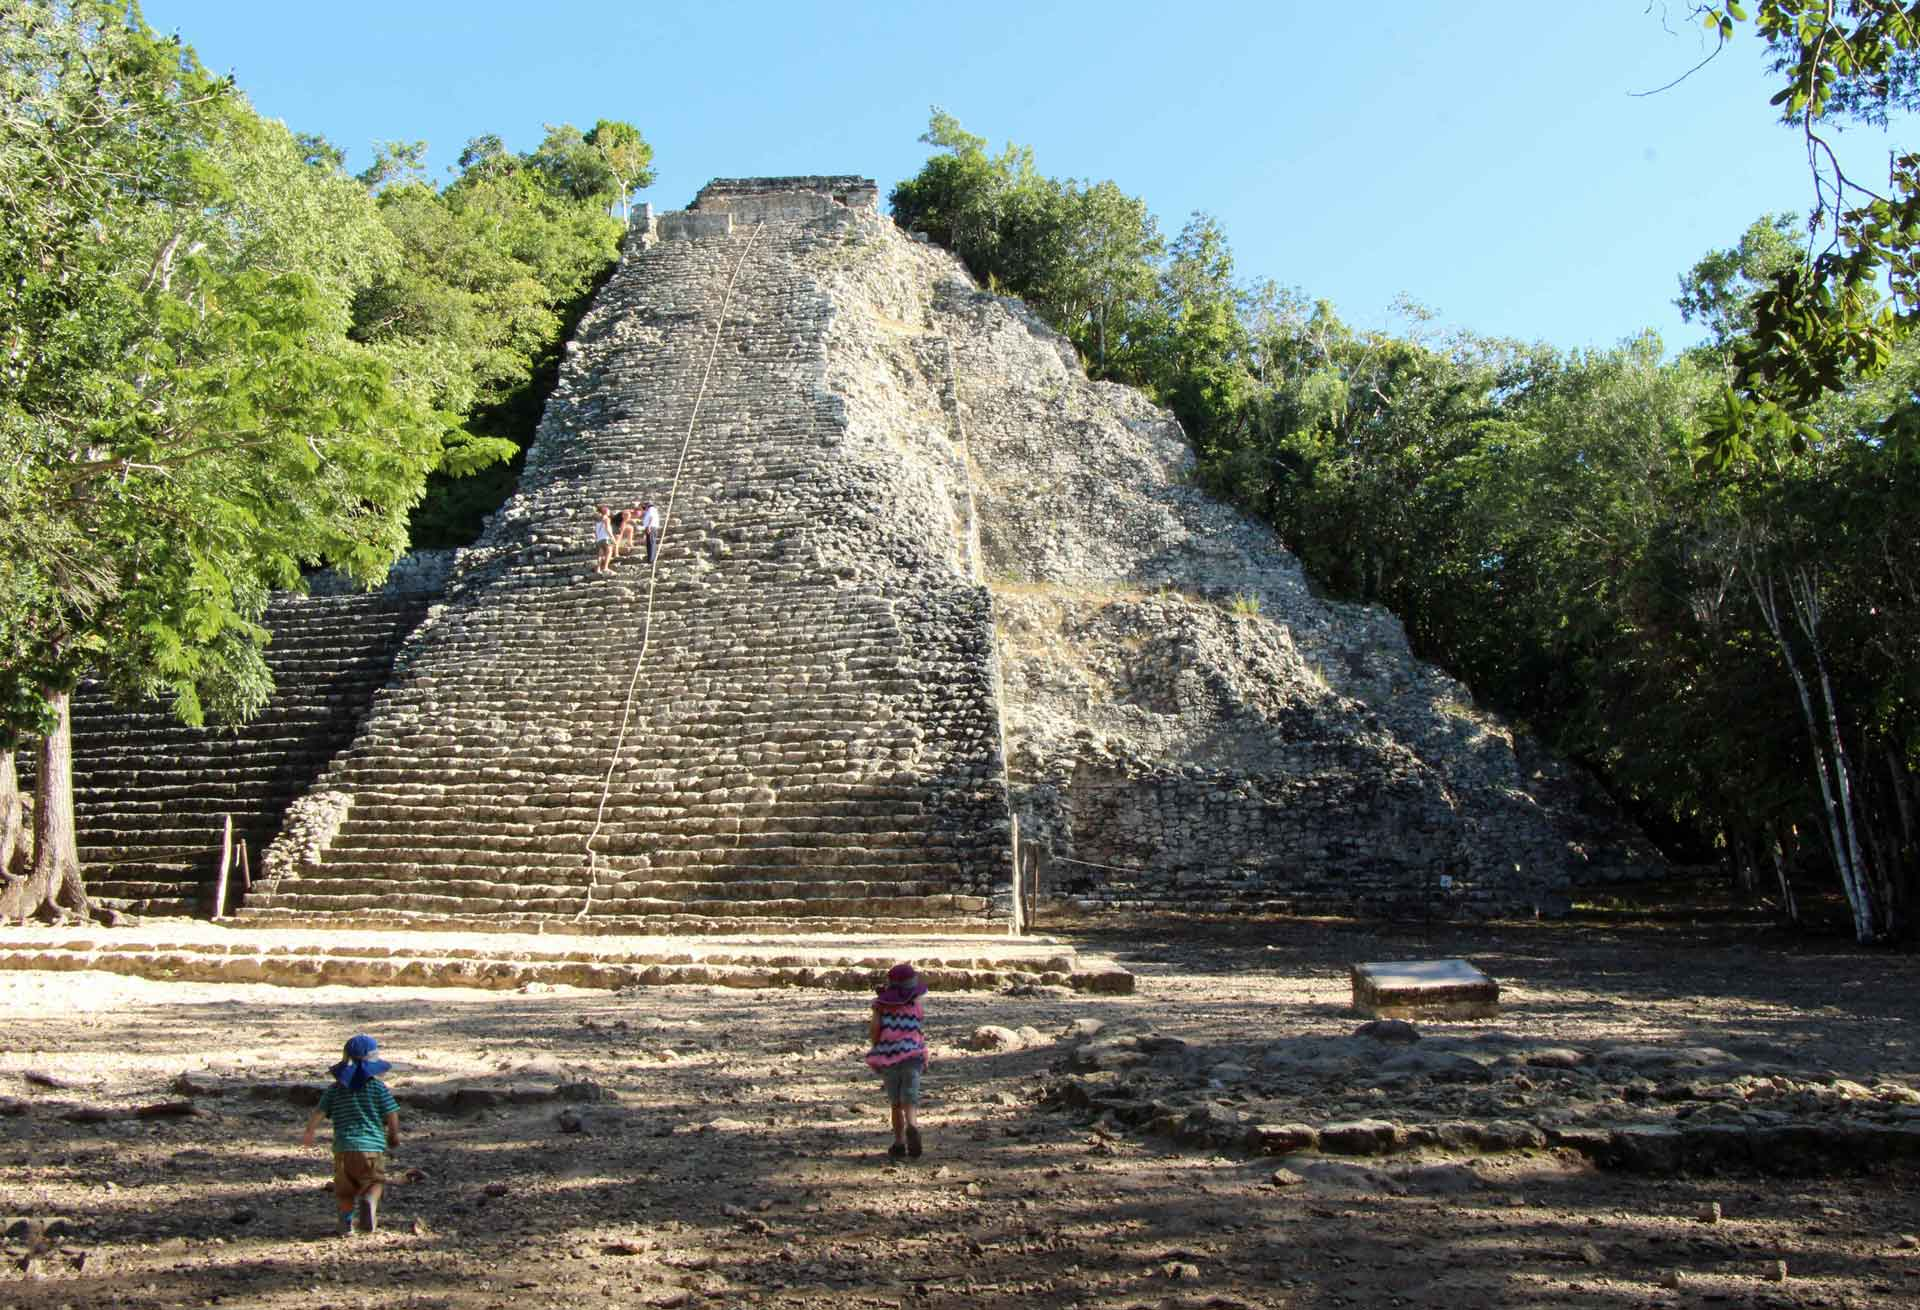 Visiting Coba Ruins with children